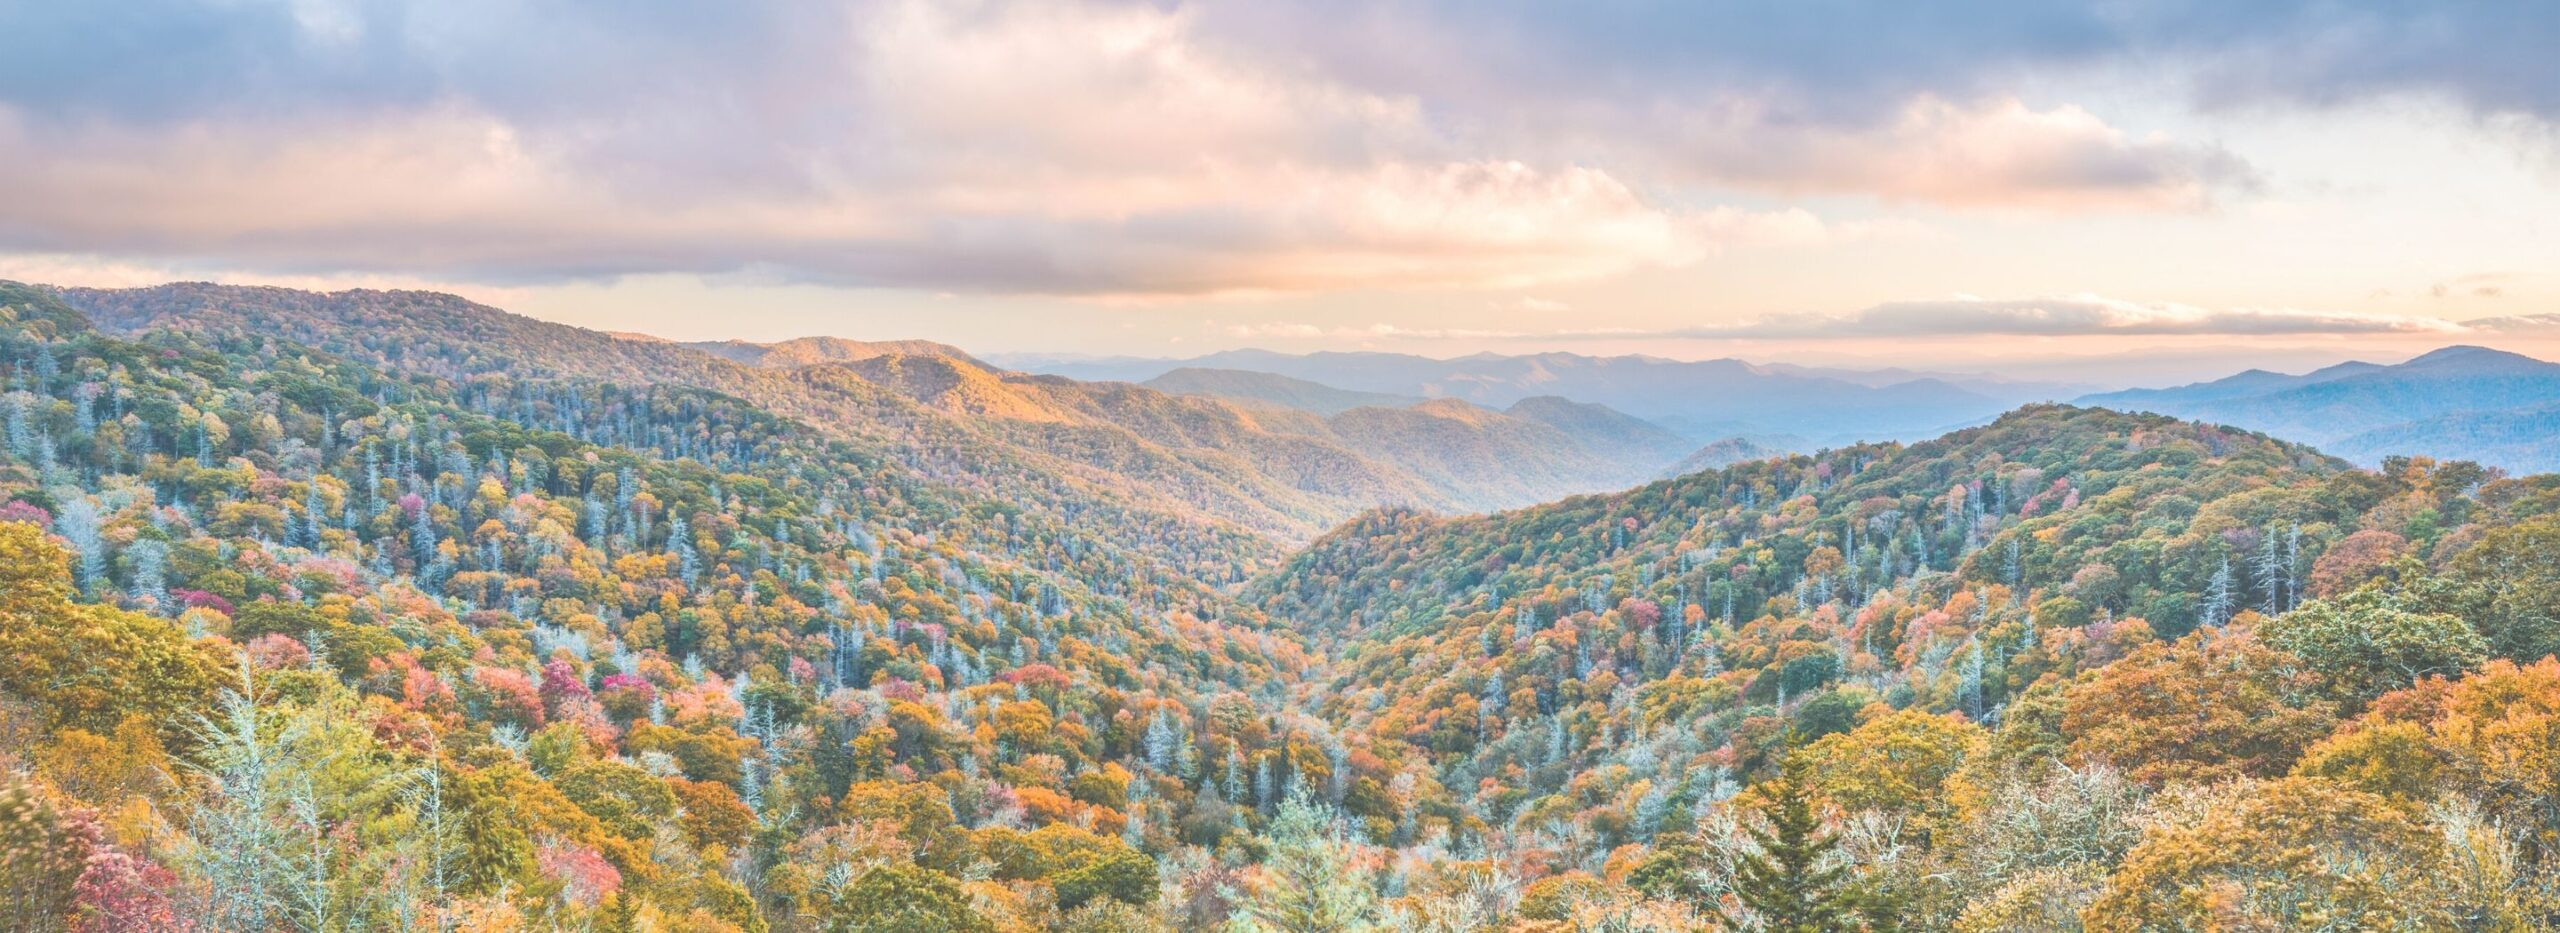 Planning a Trip to the Great Smoky Mountains?